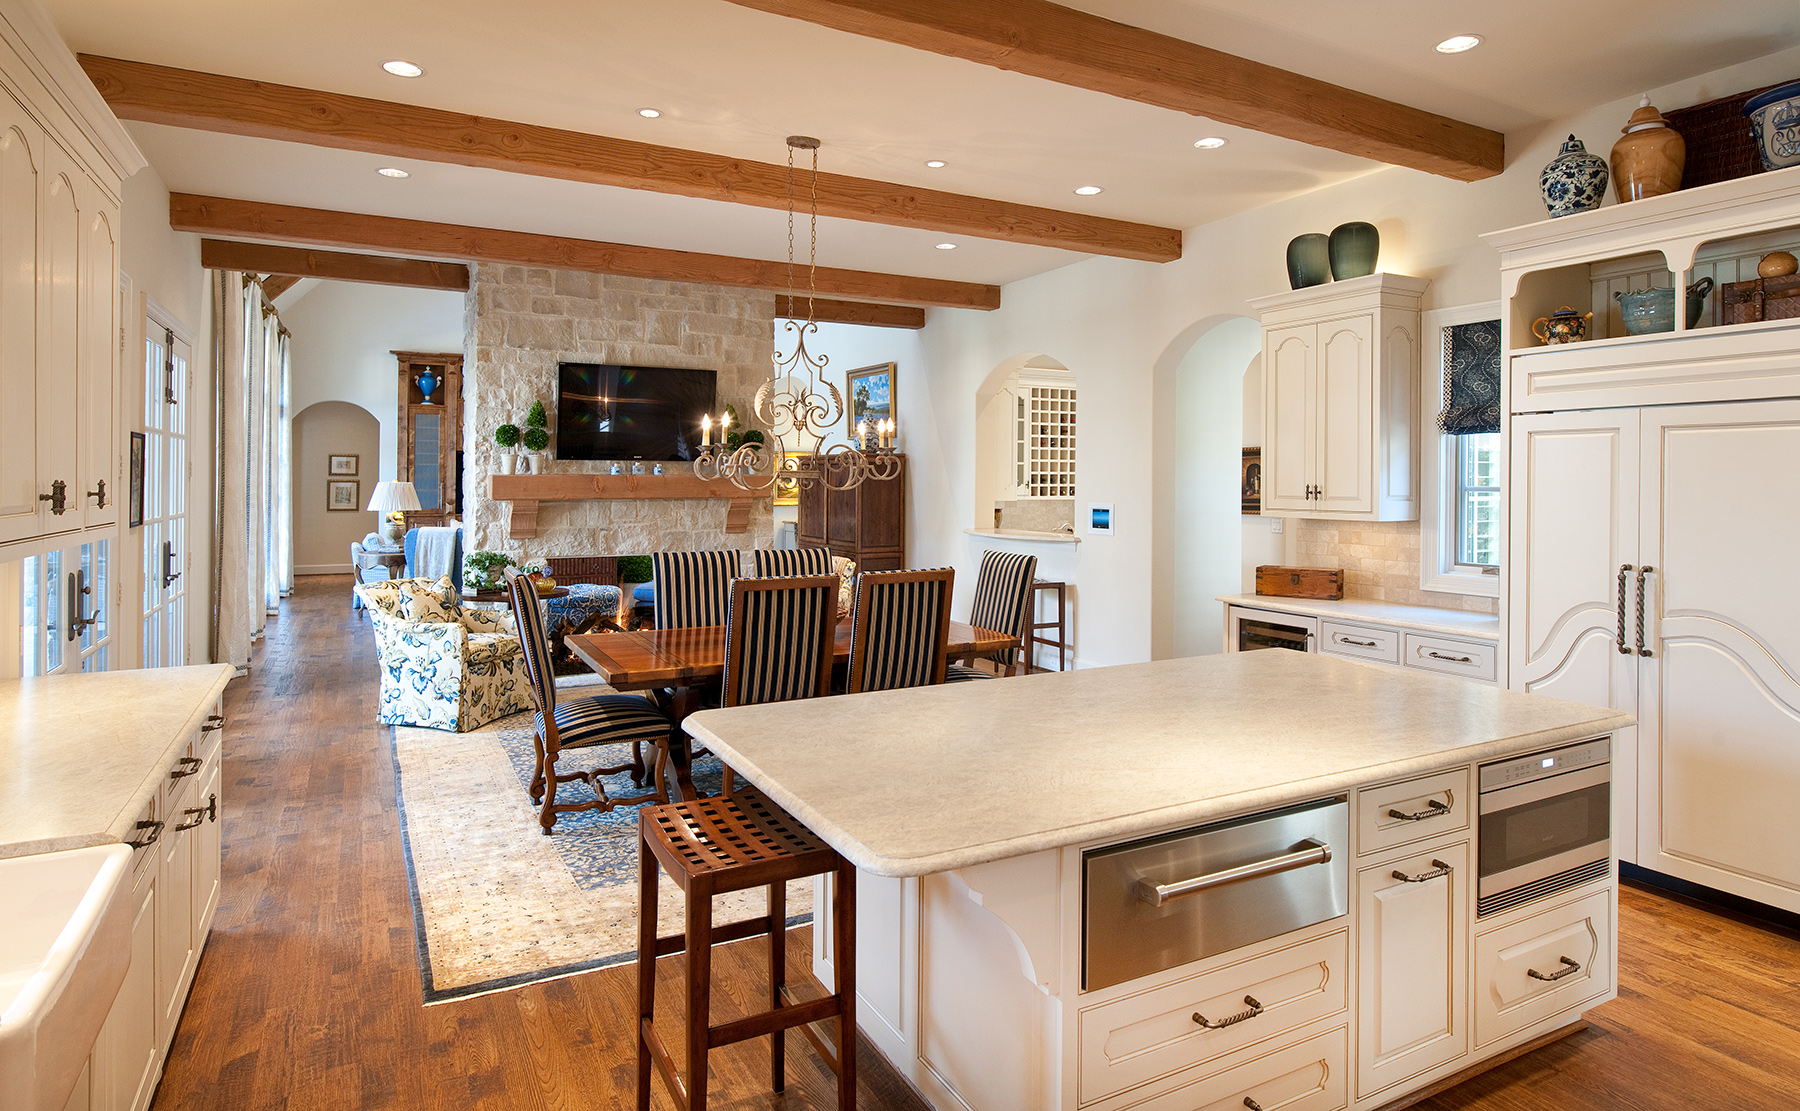 6523-Lupton-kitchen